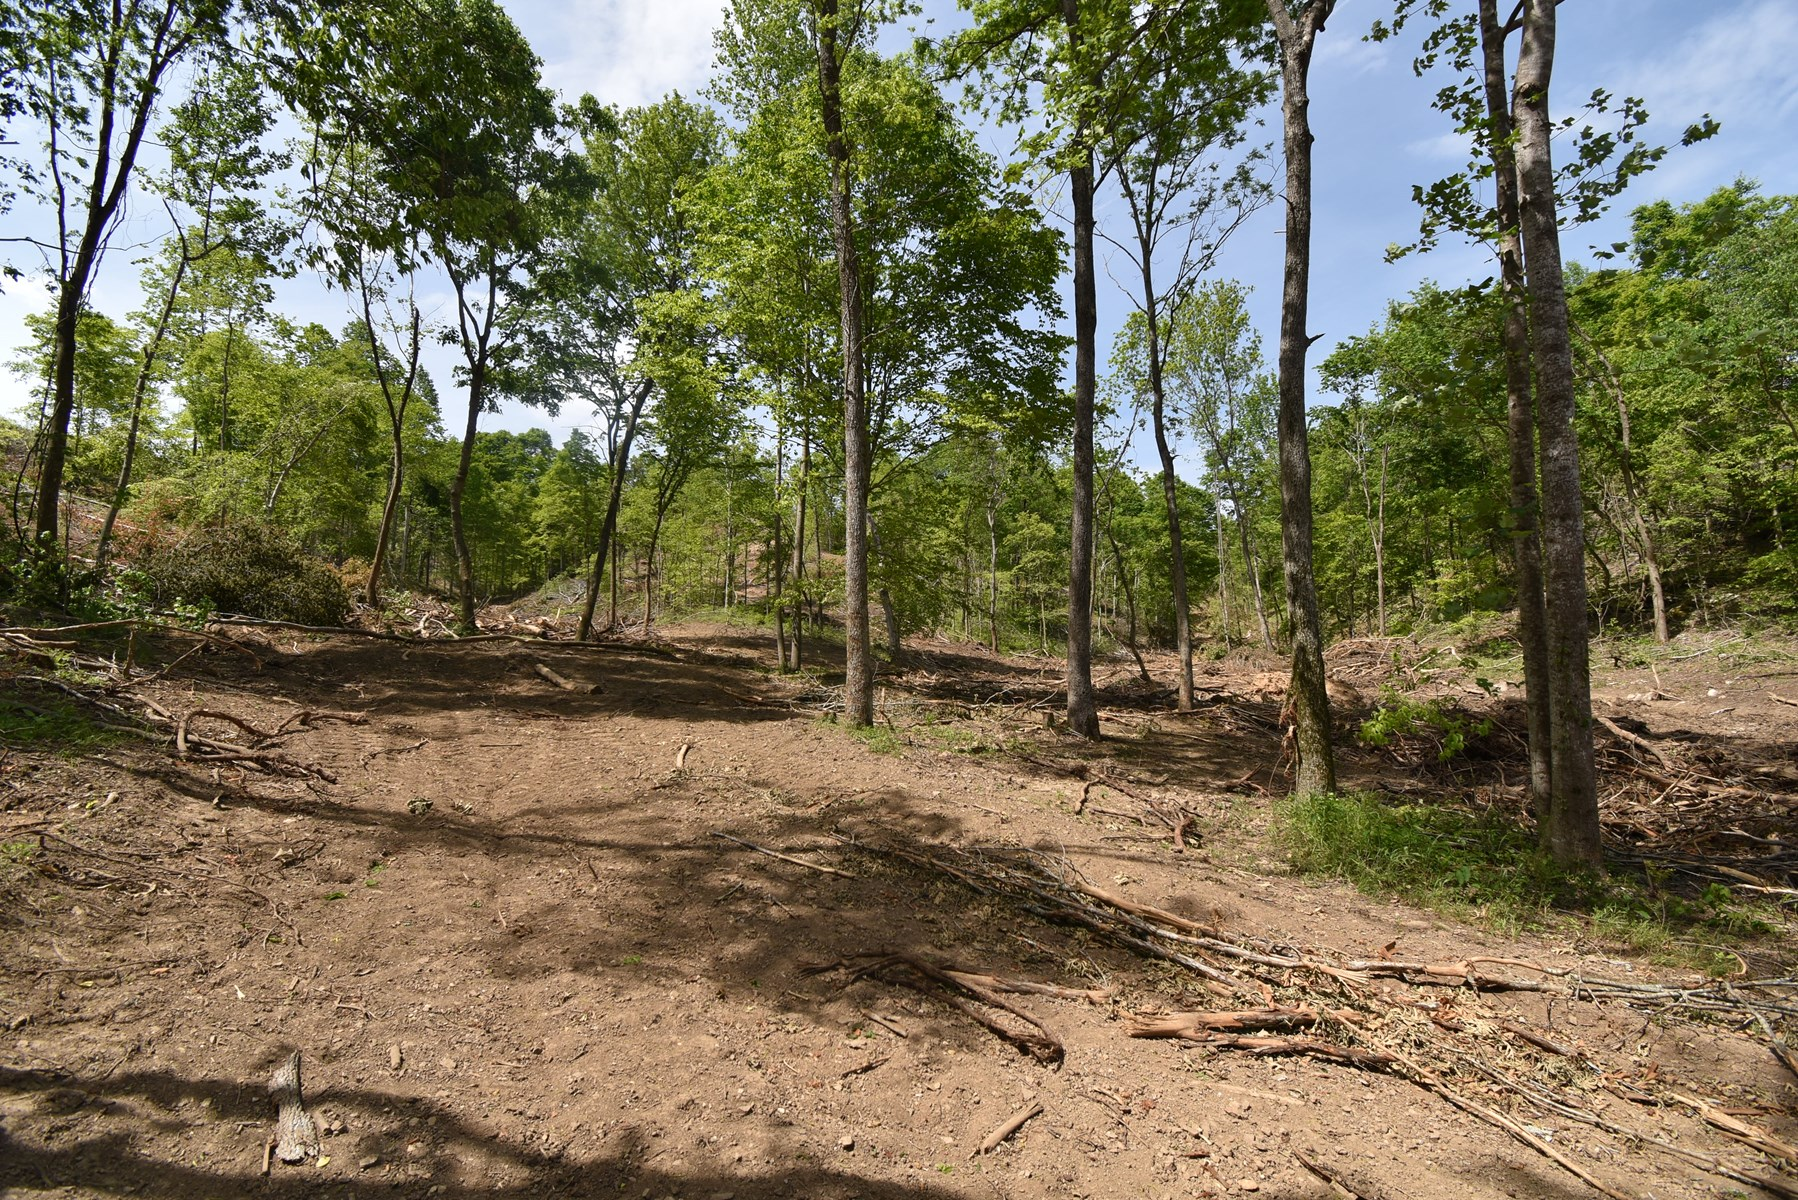 Vacant Land For Sale in Tennessee near Tn River and Park!